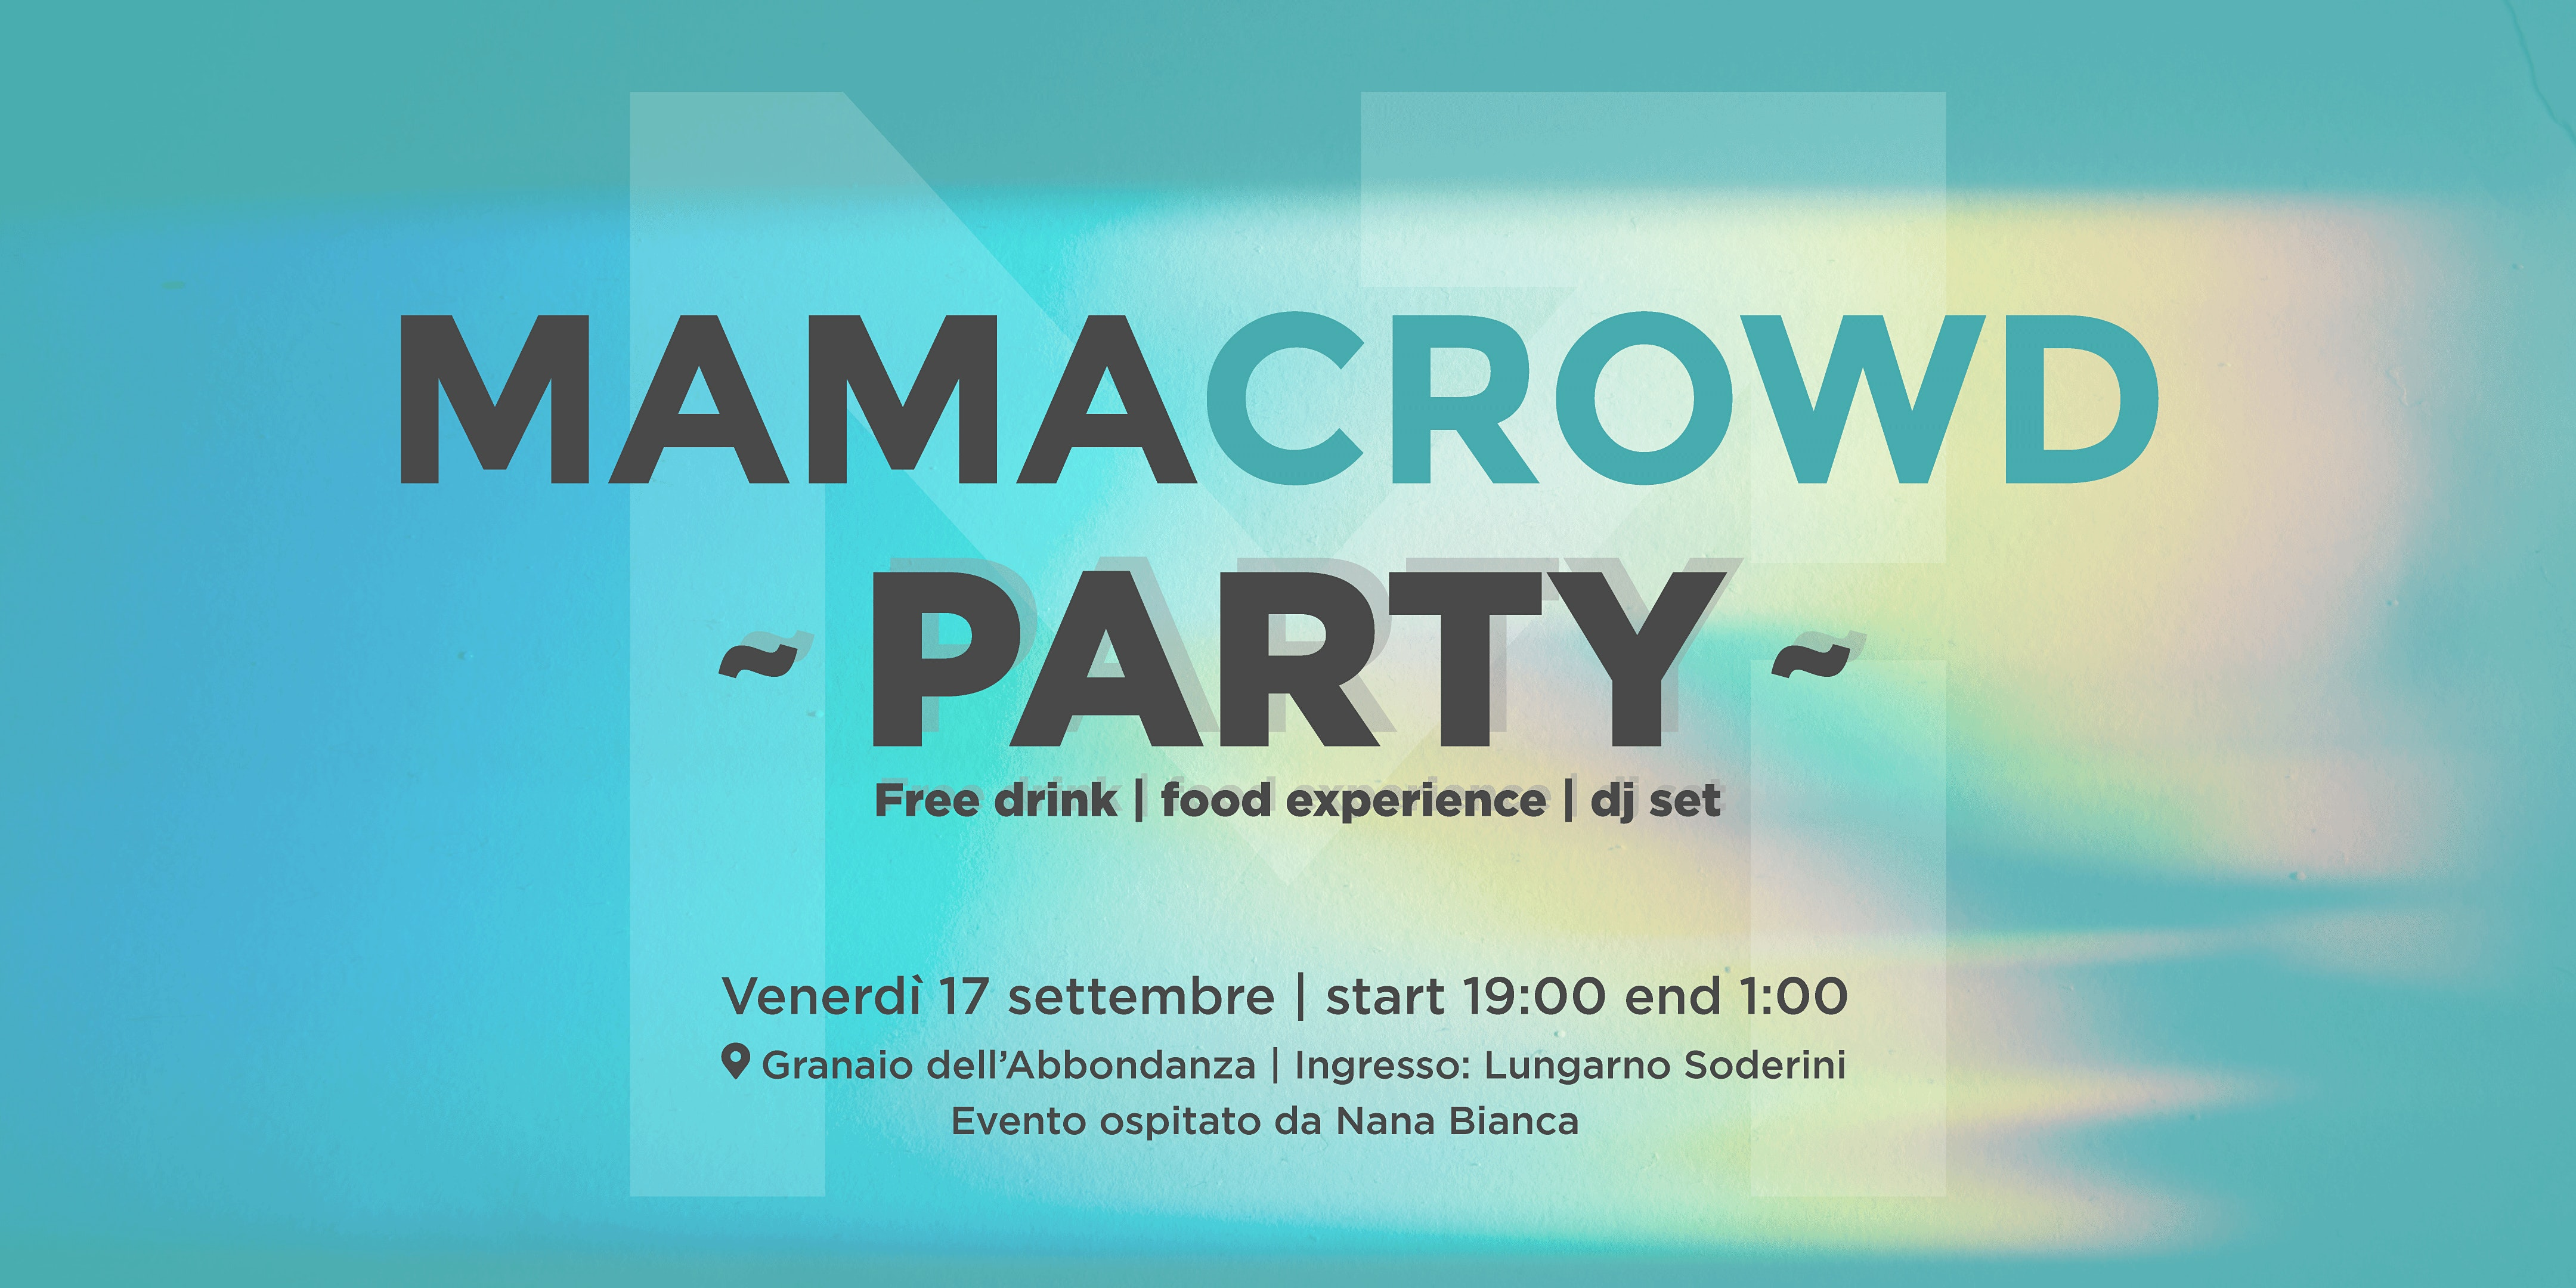 Mamacrowd party